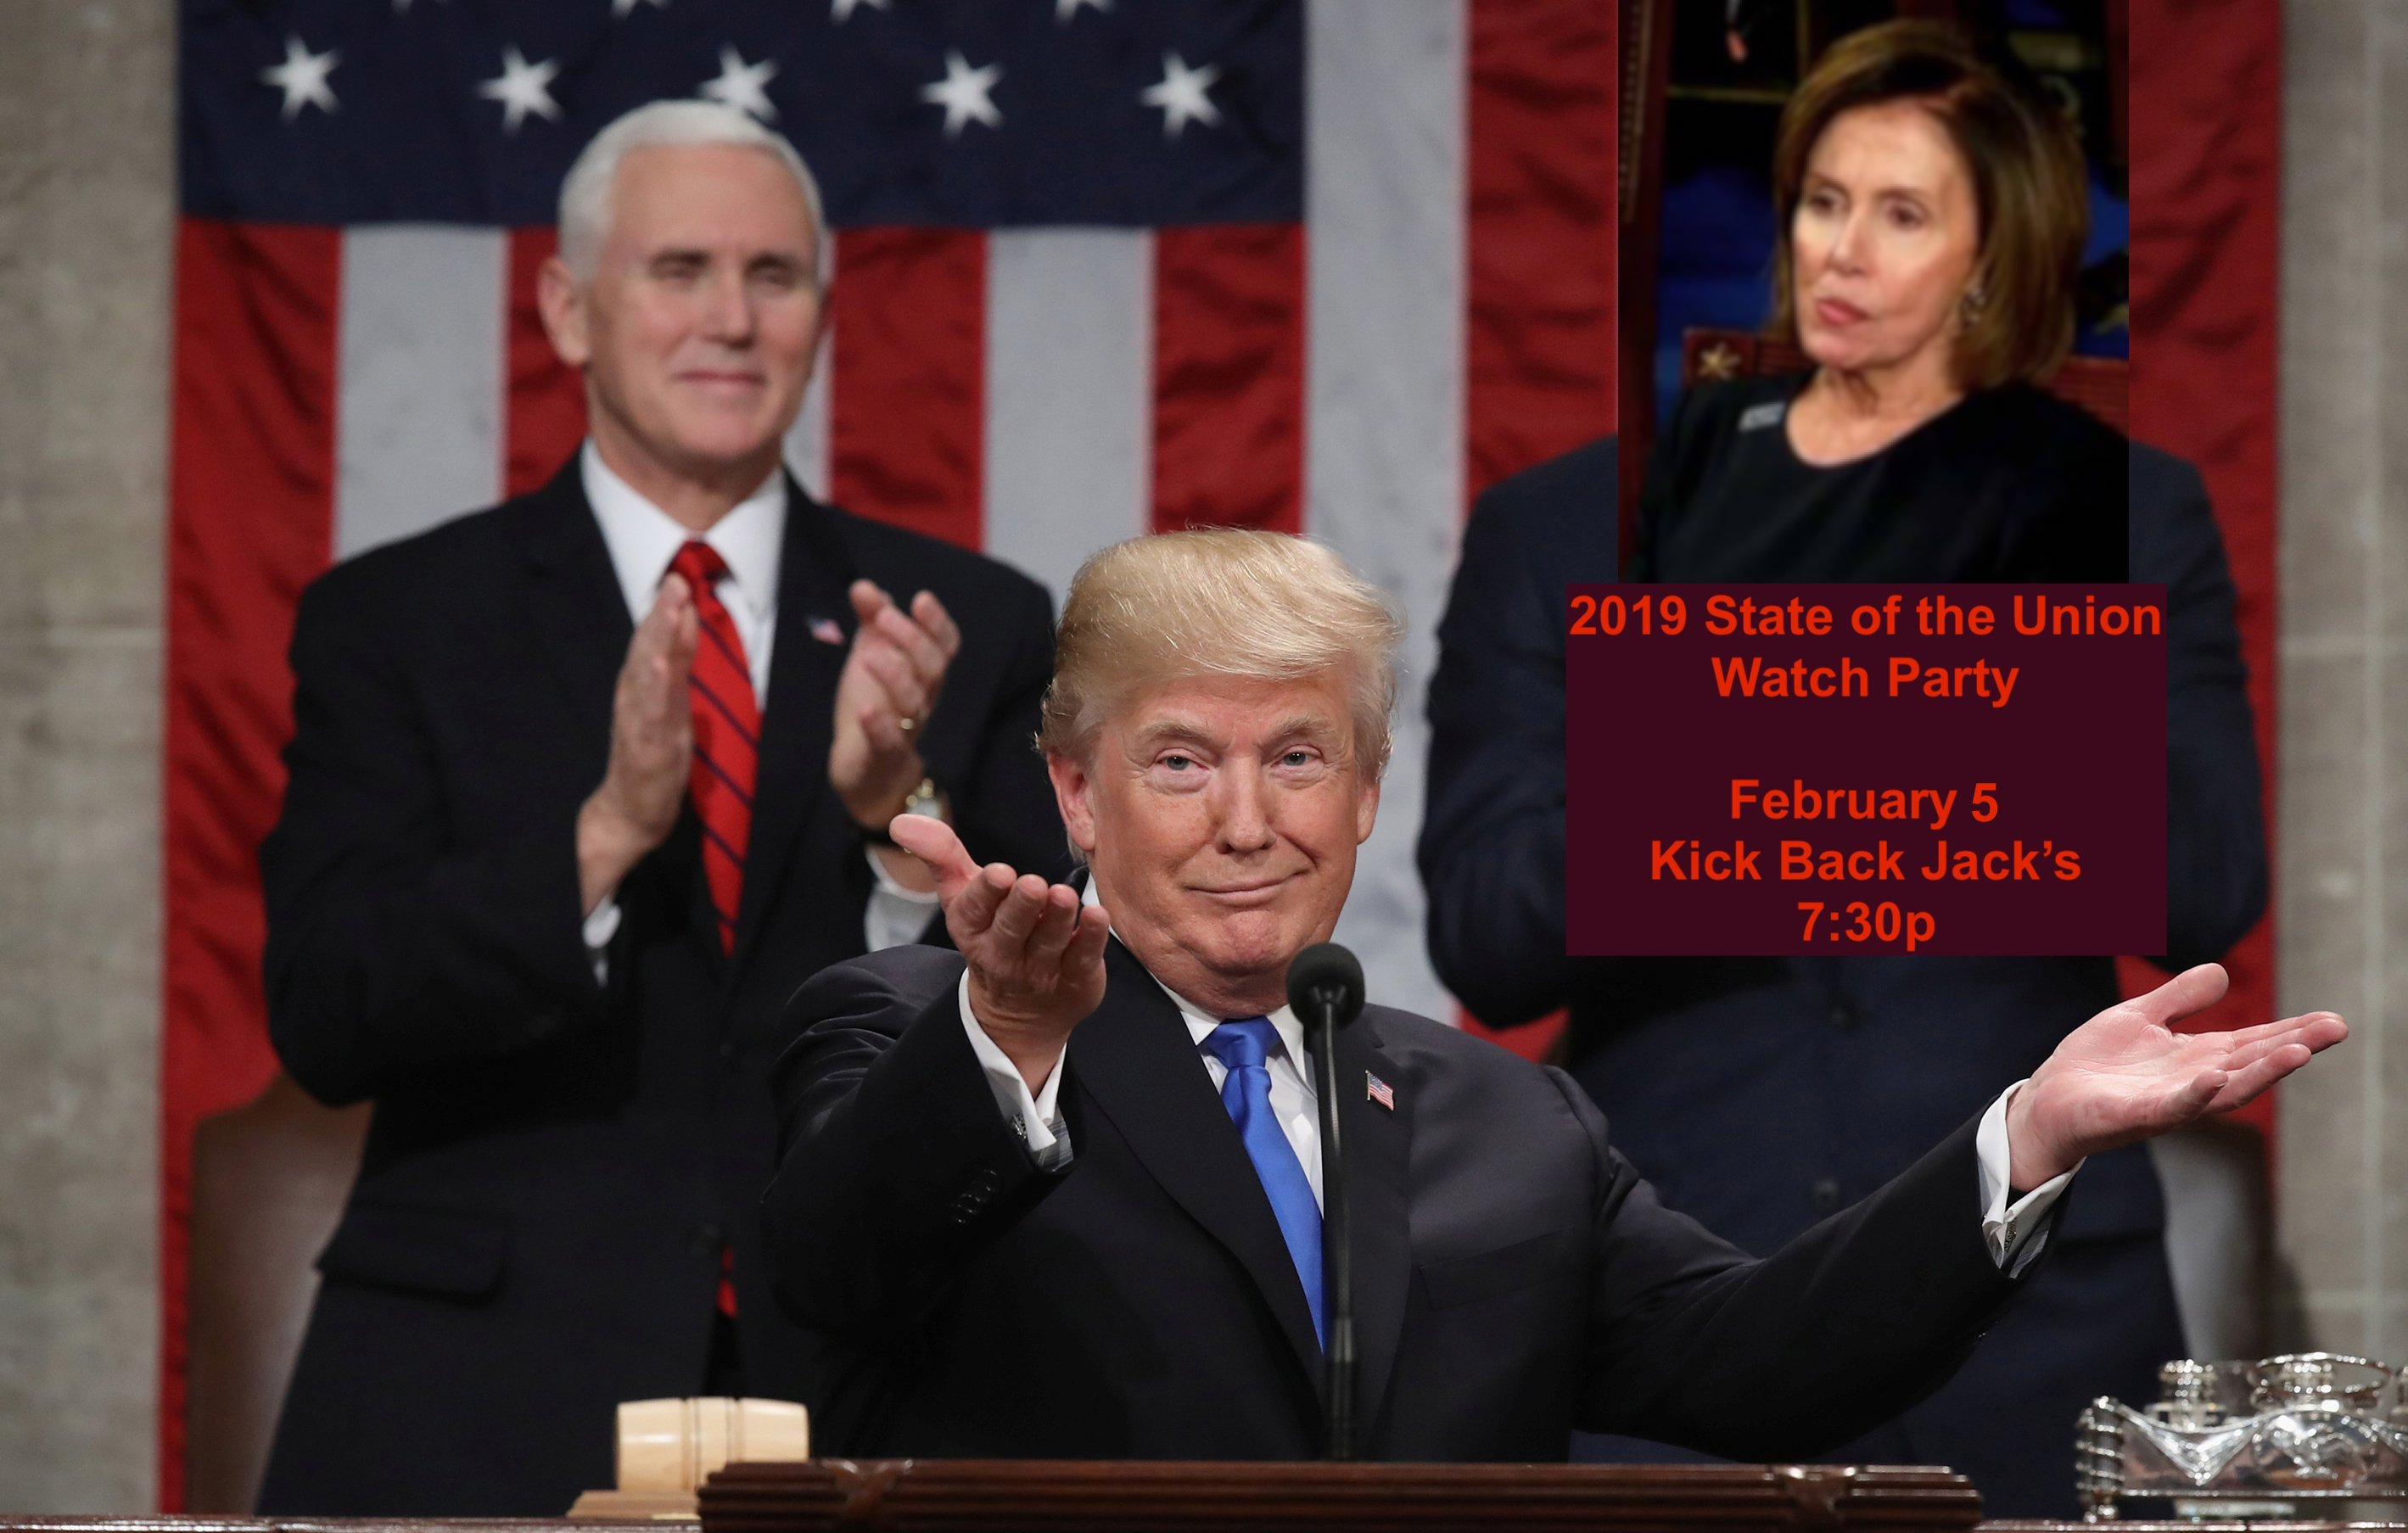 2019_SOTU_Watch_Party.jpg